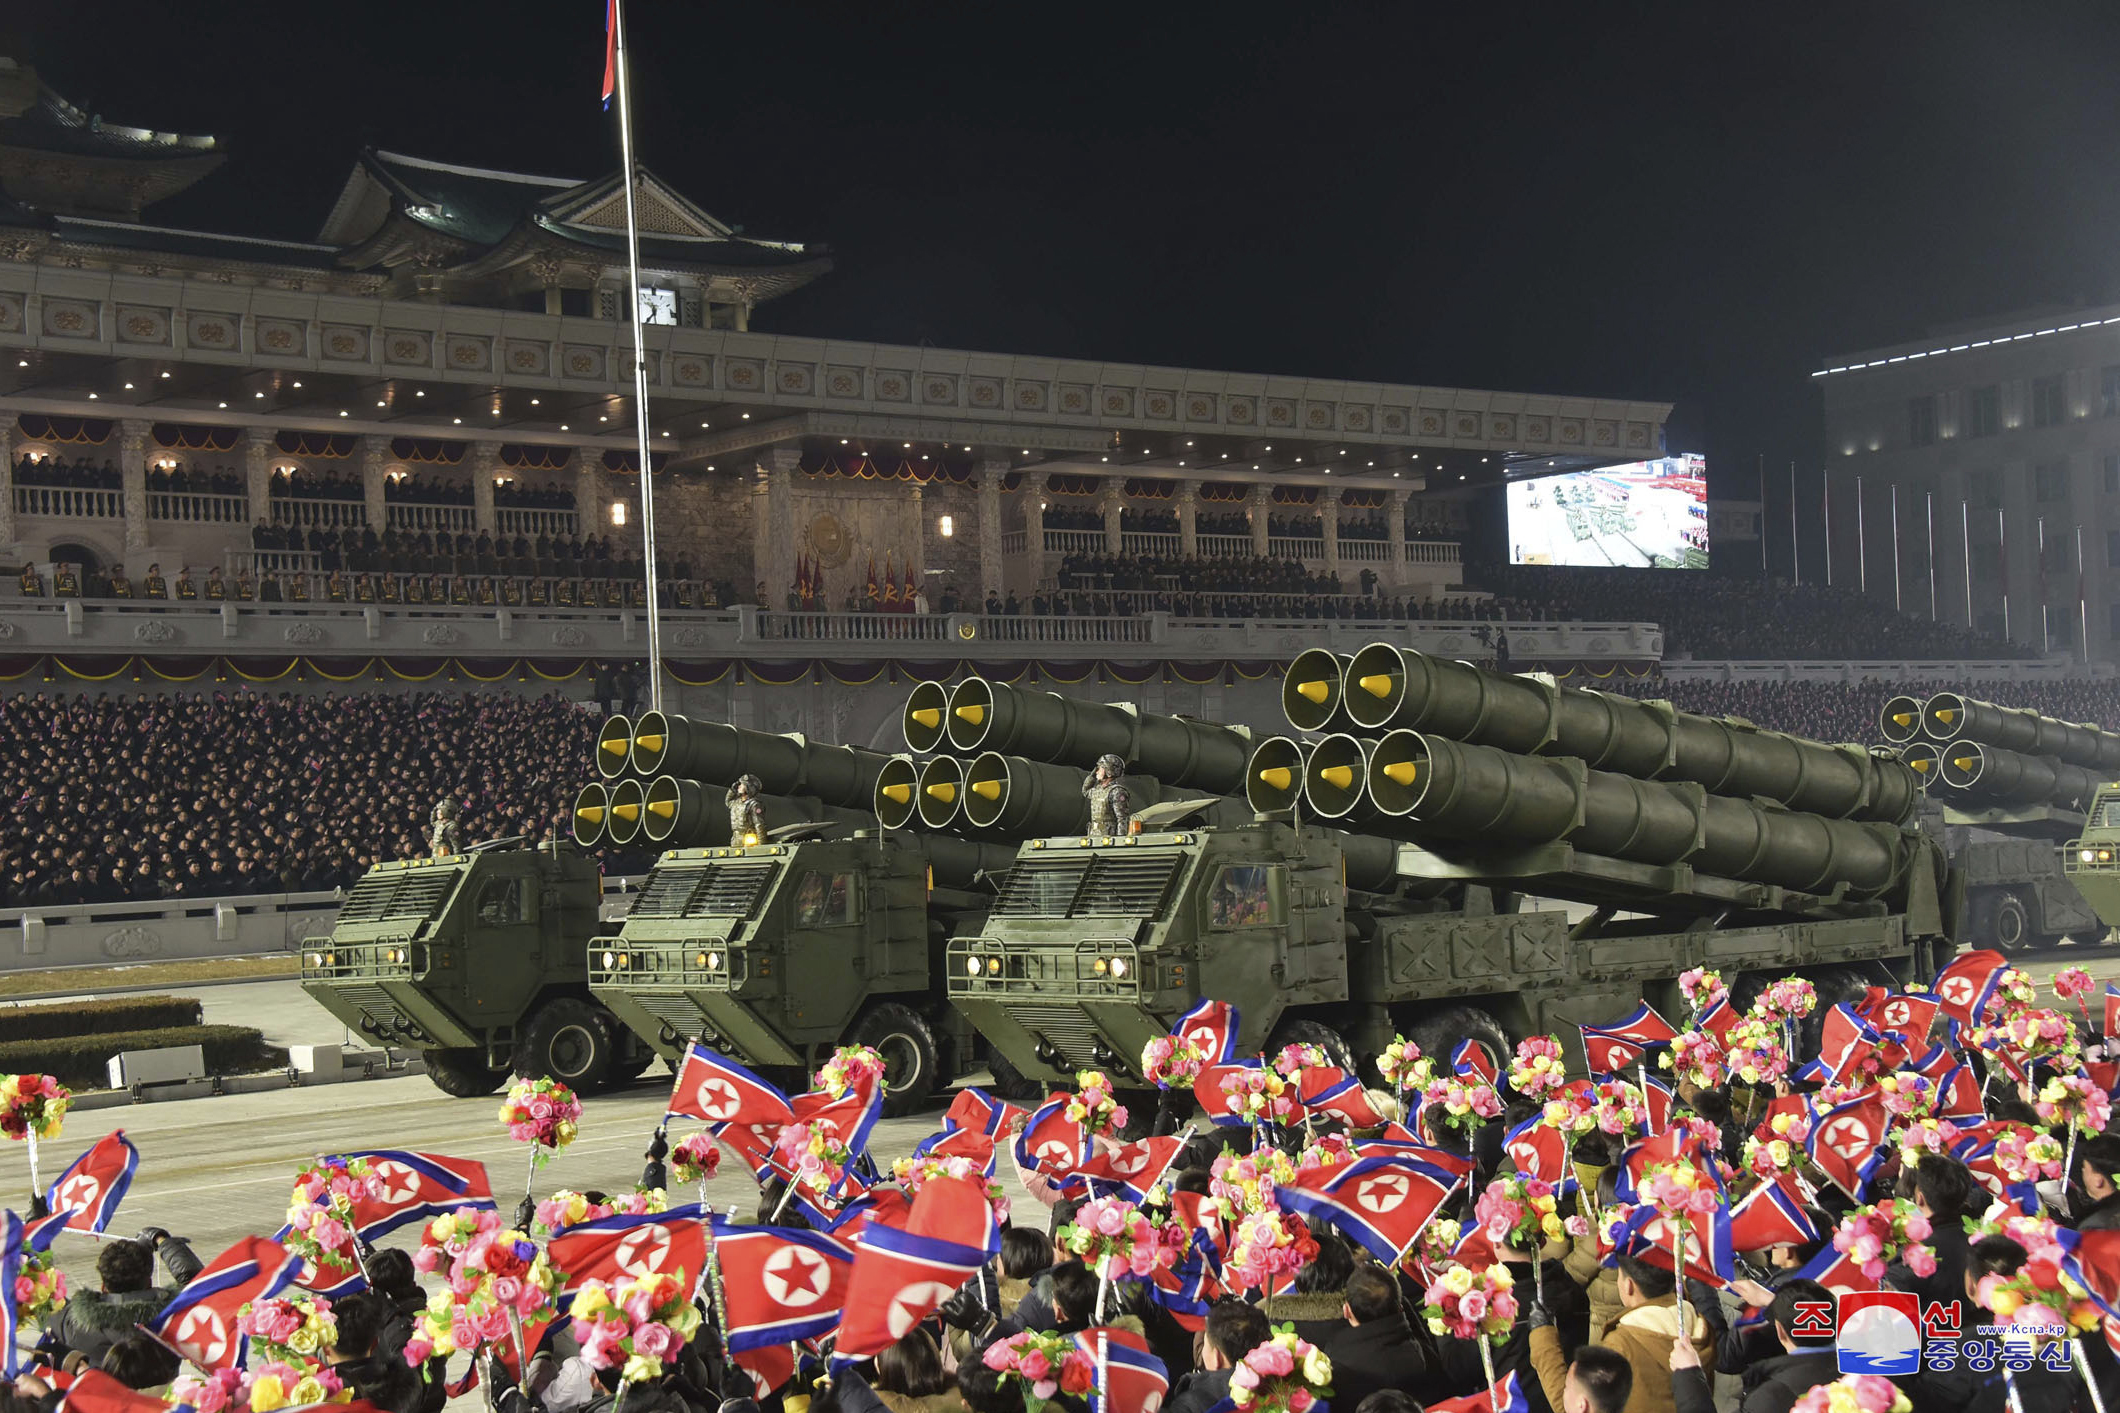 North Korea rolled out developmental ballistic missiles designed to be launched from submarines and other military hardware in a parade that punctuated leader Kim Jong Un's defiant calls to expand his nuclear weapons program. (Korean Central News Agency/Korea News Service via AP)